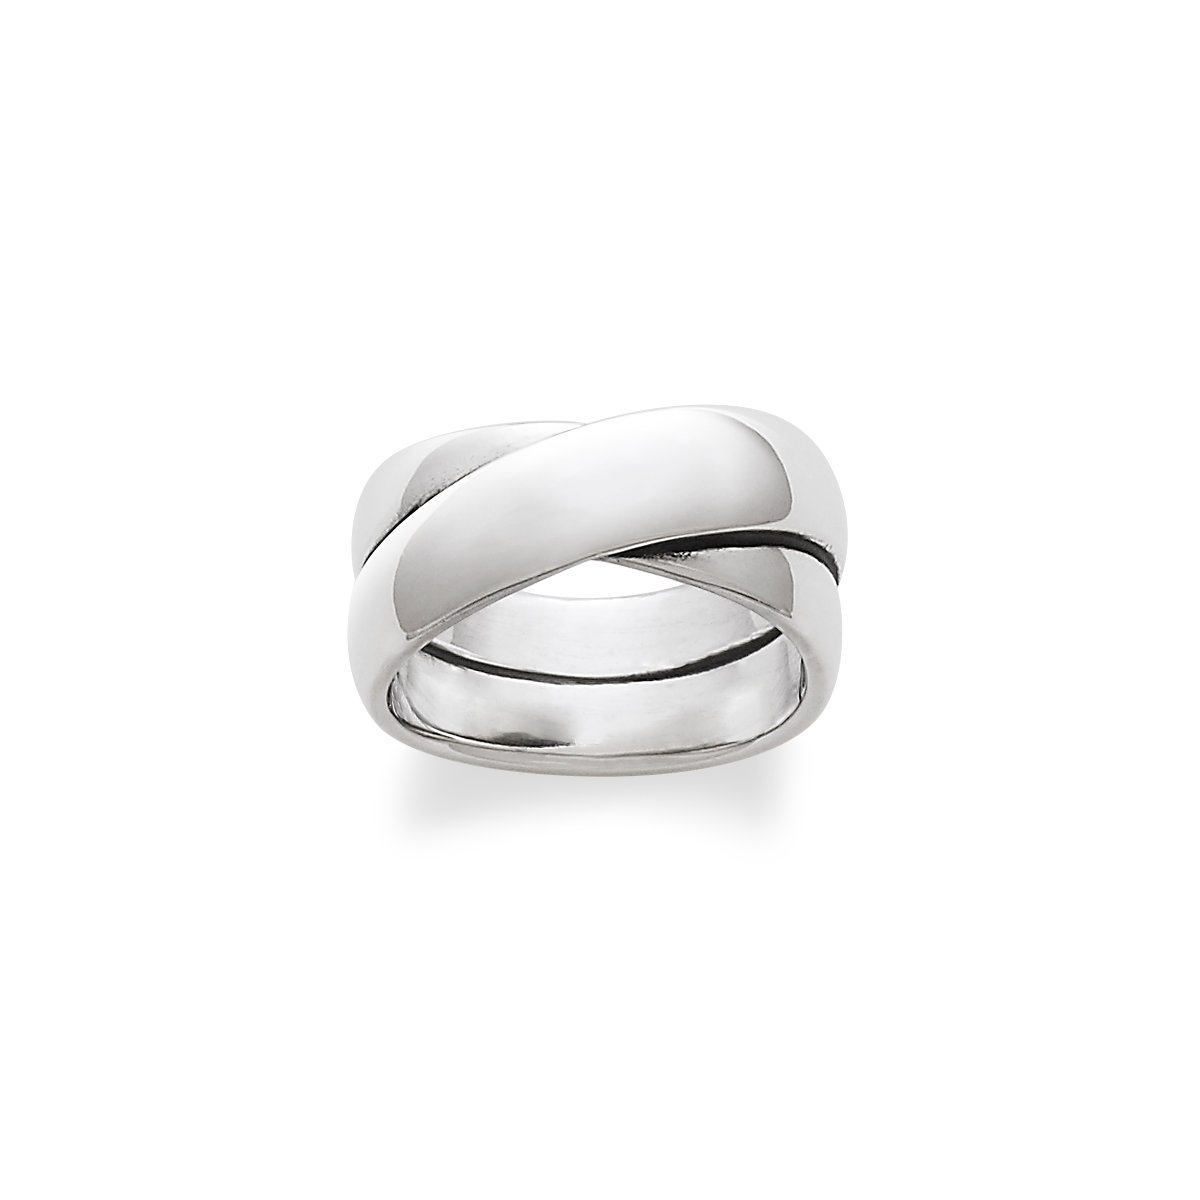 jewelry in fashion quality love gift wedding silver bands friend endless ring for item wholesale high best sterling infinity symbol women from rings